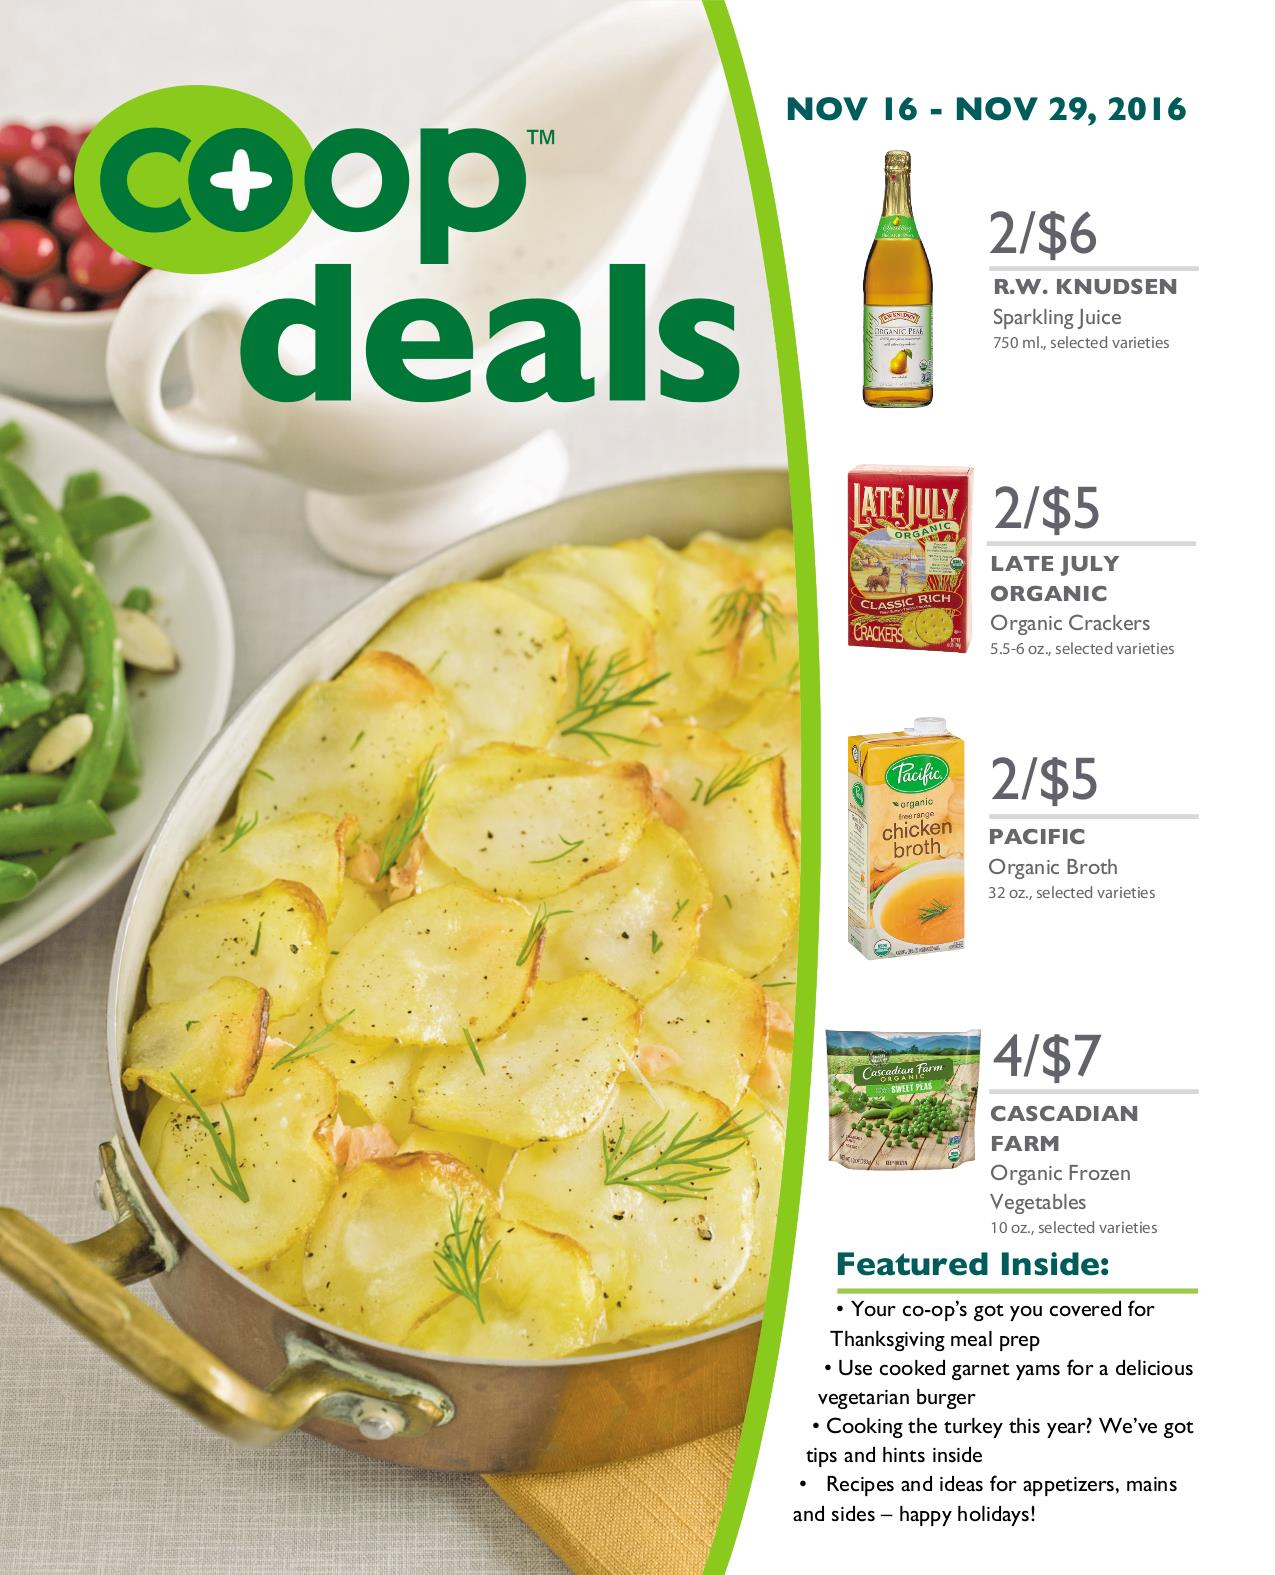 coop_deals_nov_2016_flyer_east_zone_1_2_3_b_page_1